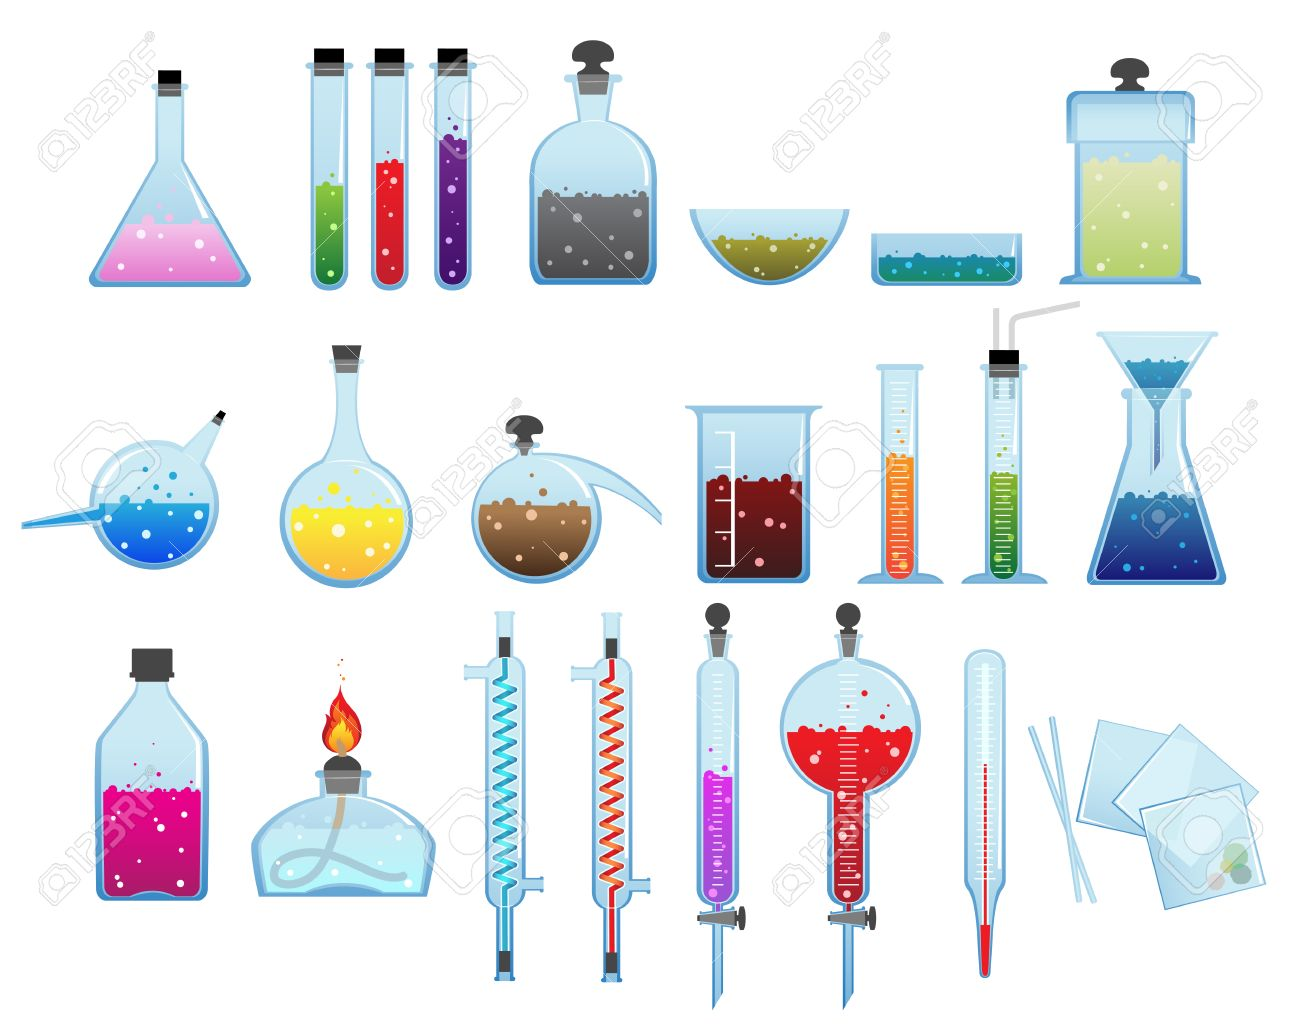 Set of laboratory glassware and equipment on a white background - 30394269